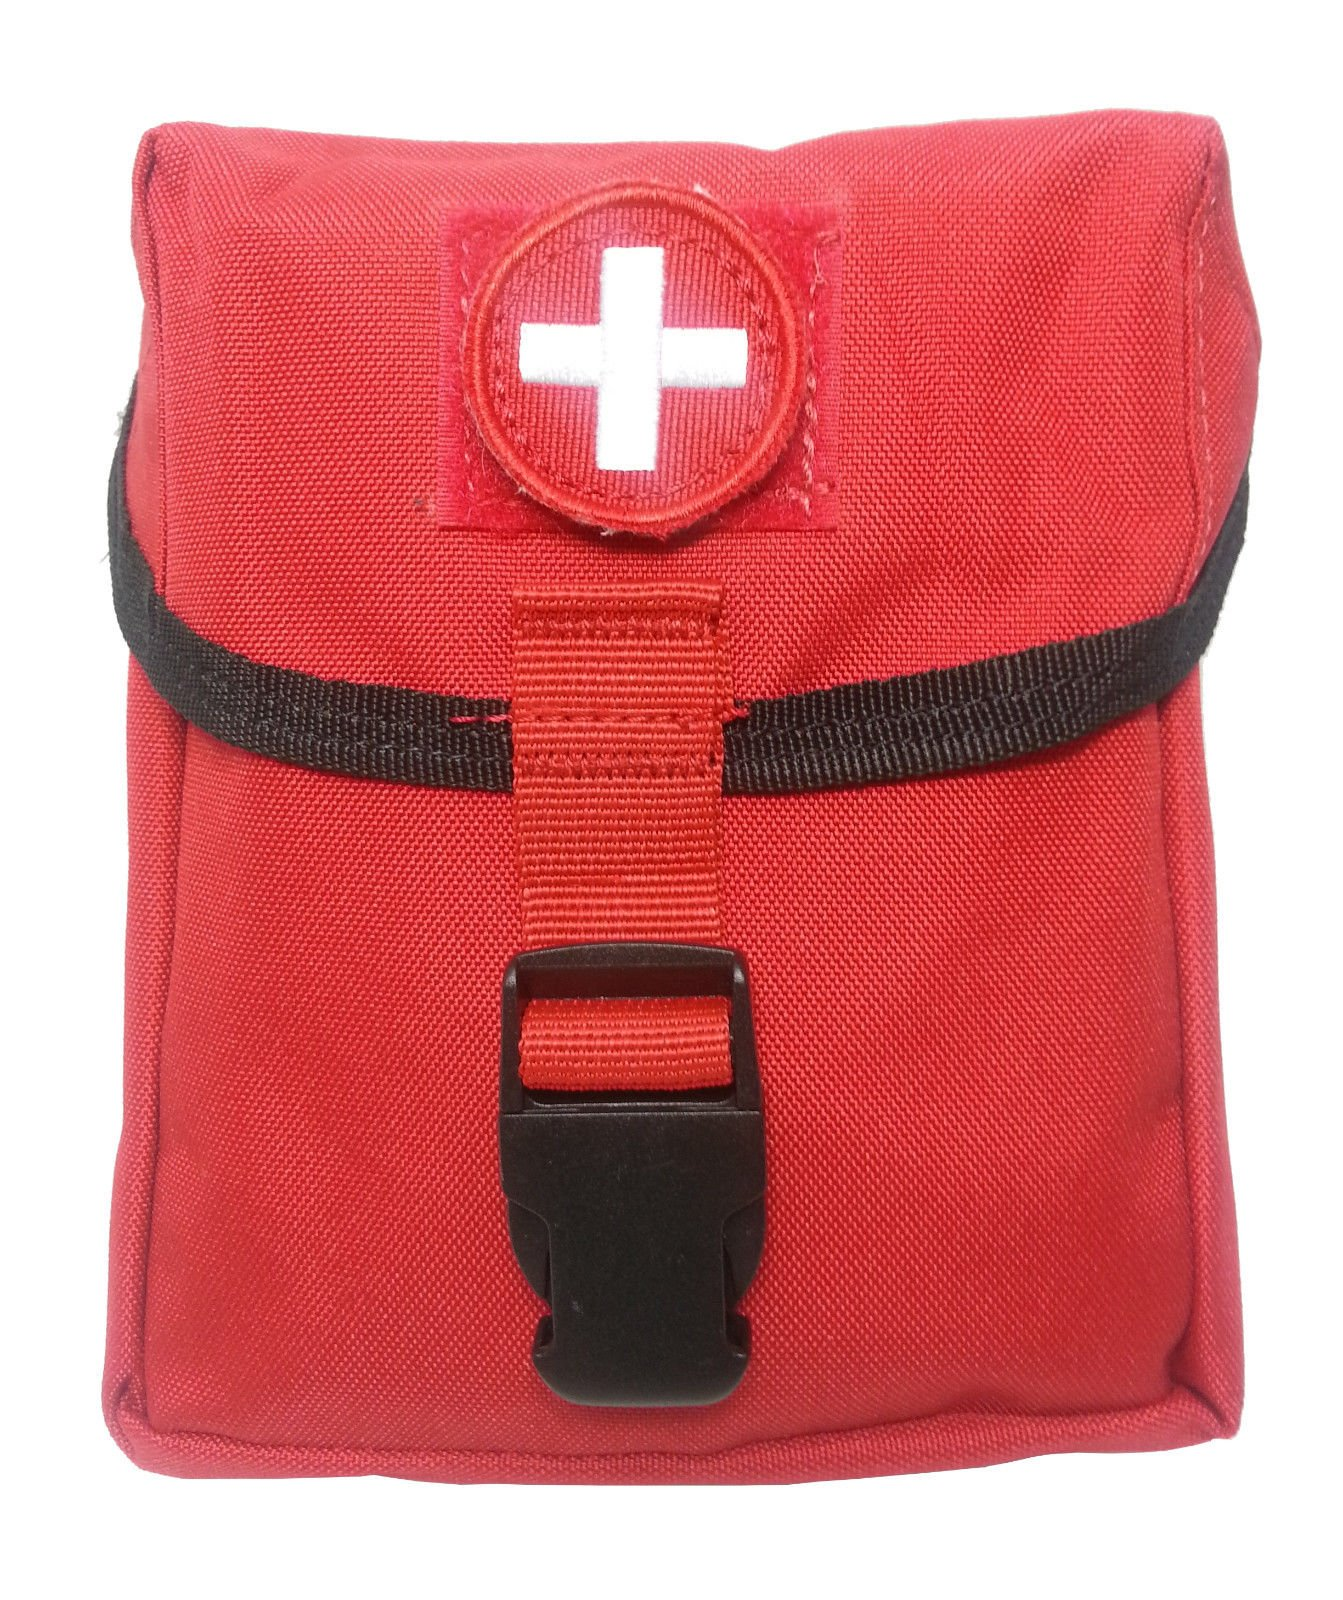 Surplus Provisions New Recruit First Aid Kit - Military IFAK Army Medic - RED - #FA15 by Surplus Provisions (Image #2)